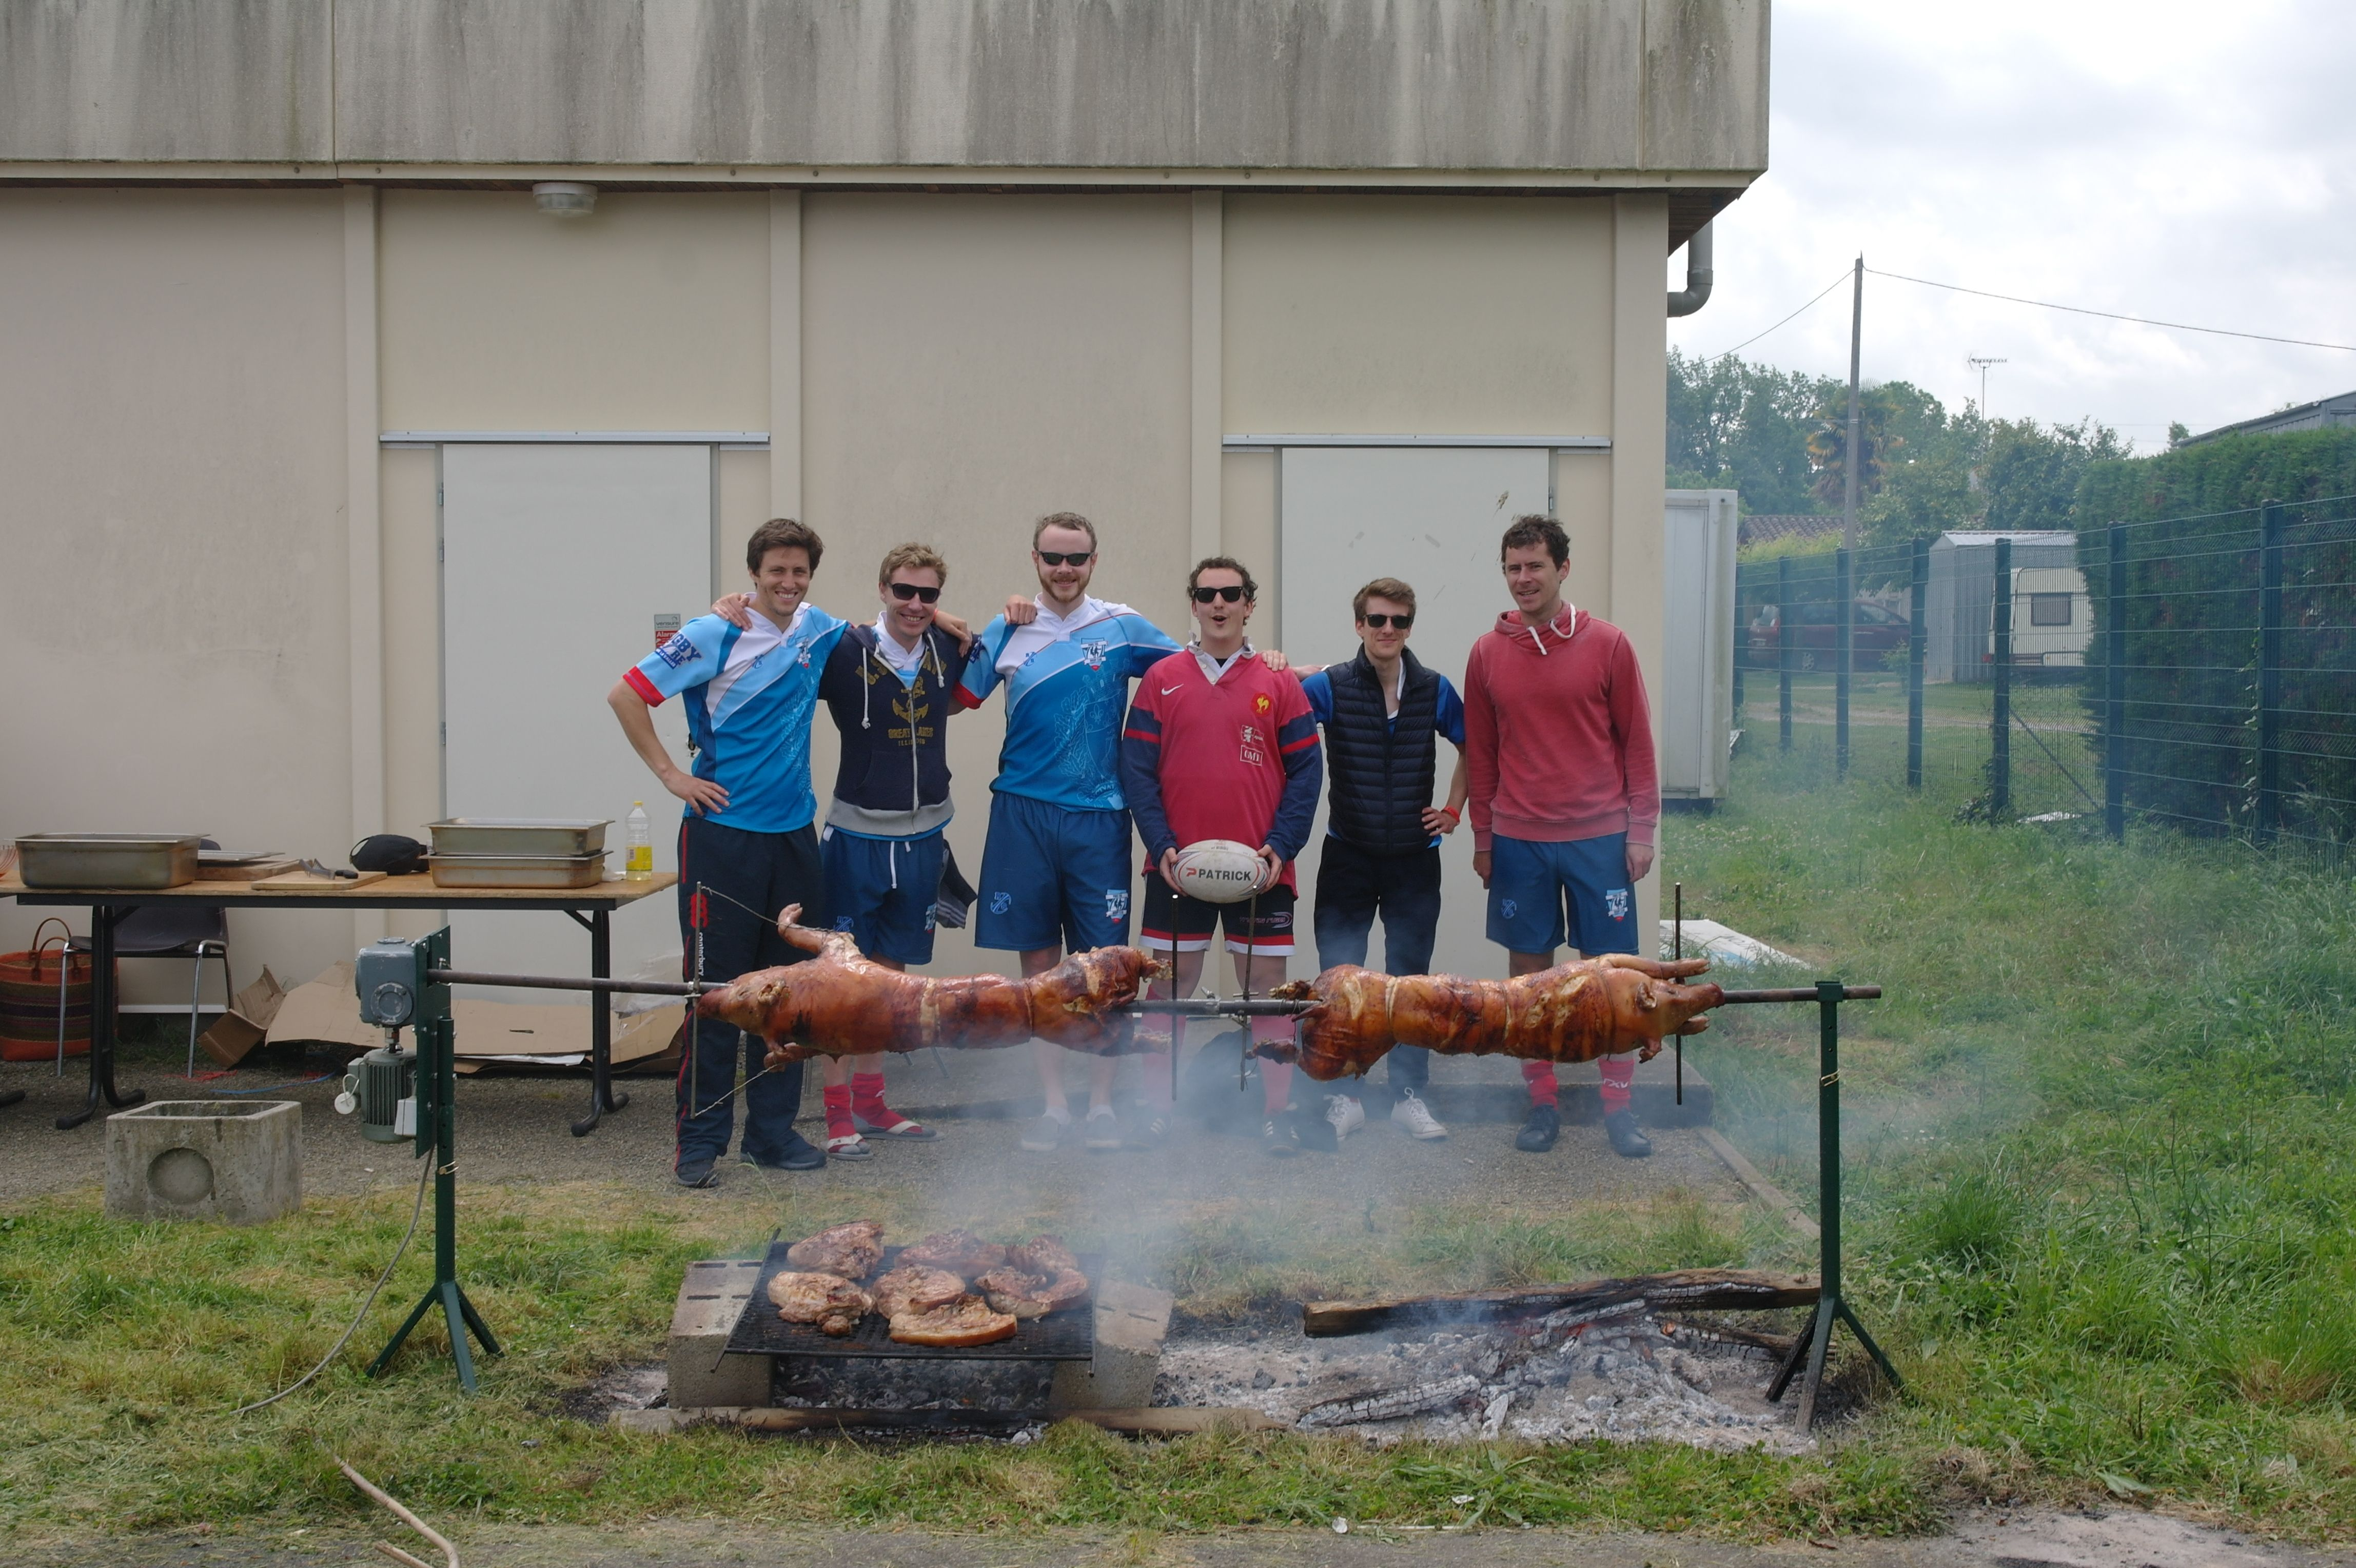 Lunch break arrived and part of the team hesitated on stealing one of the pigs(they didn't, Fronton can confirm)